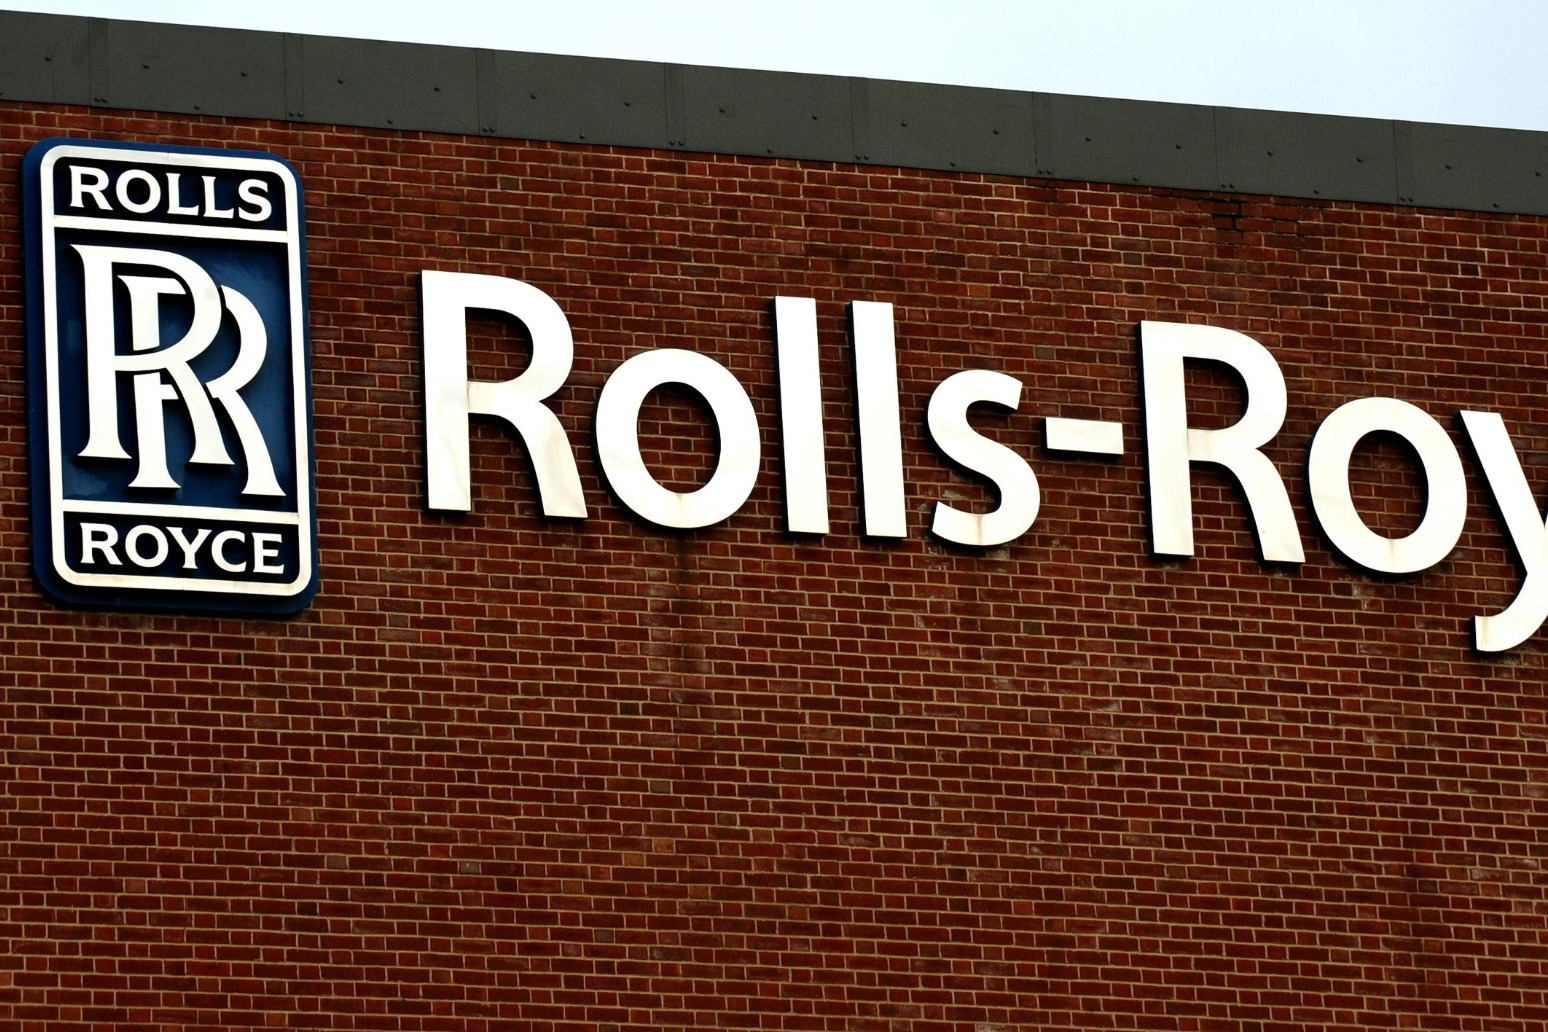 Rolls-Royce factory workers reach deal after strike action over job cuts